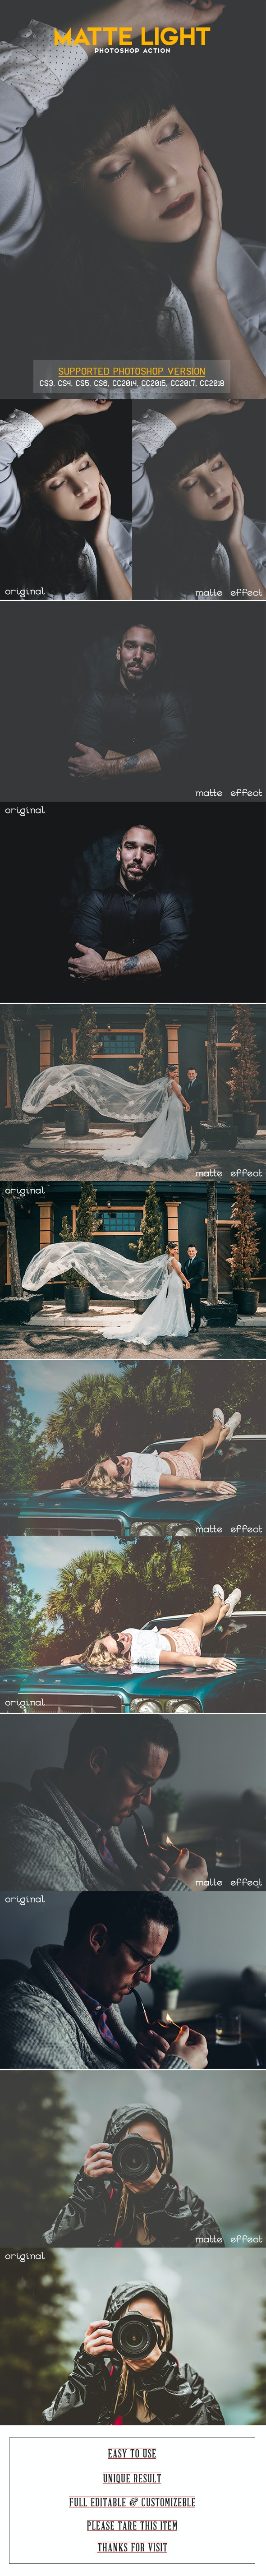 Matte Light Photoshop Action - Photo Effects Actions